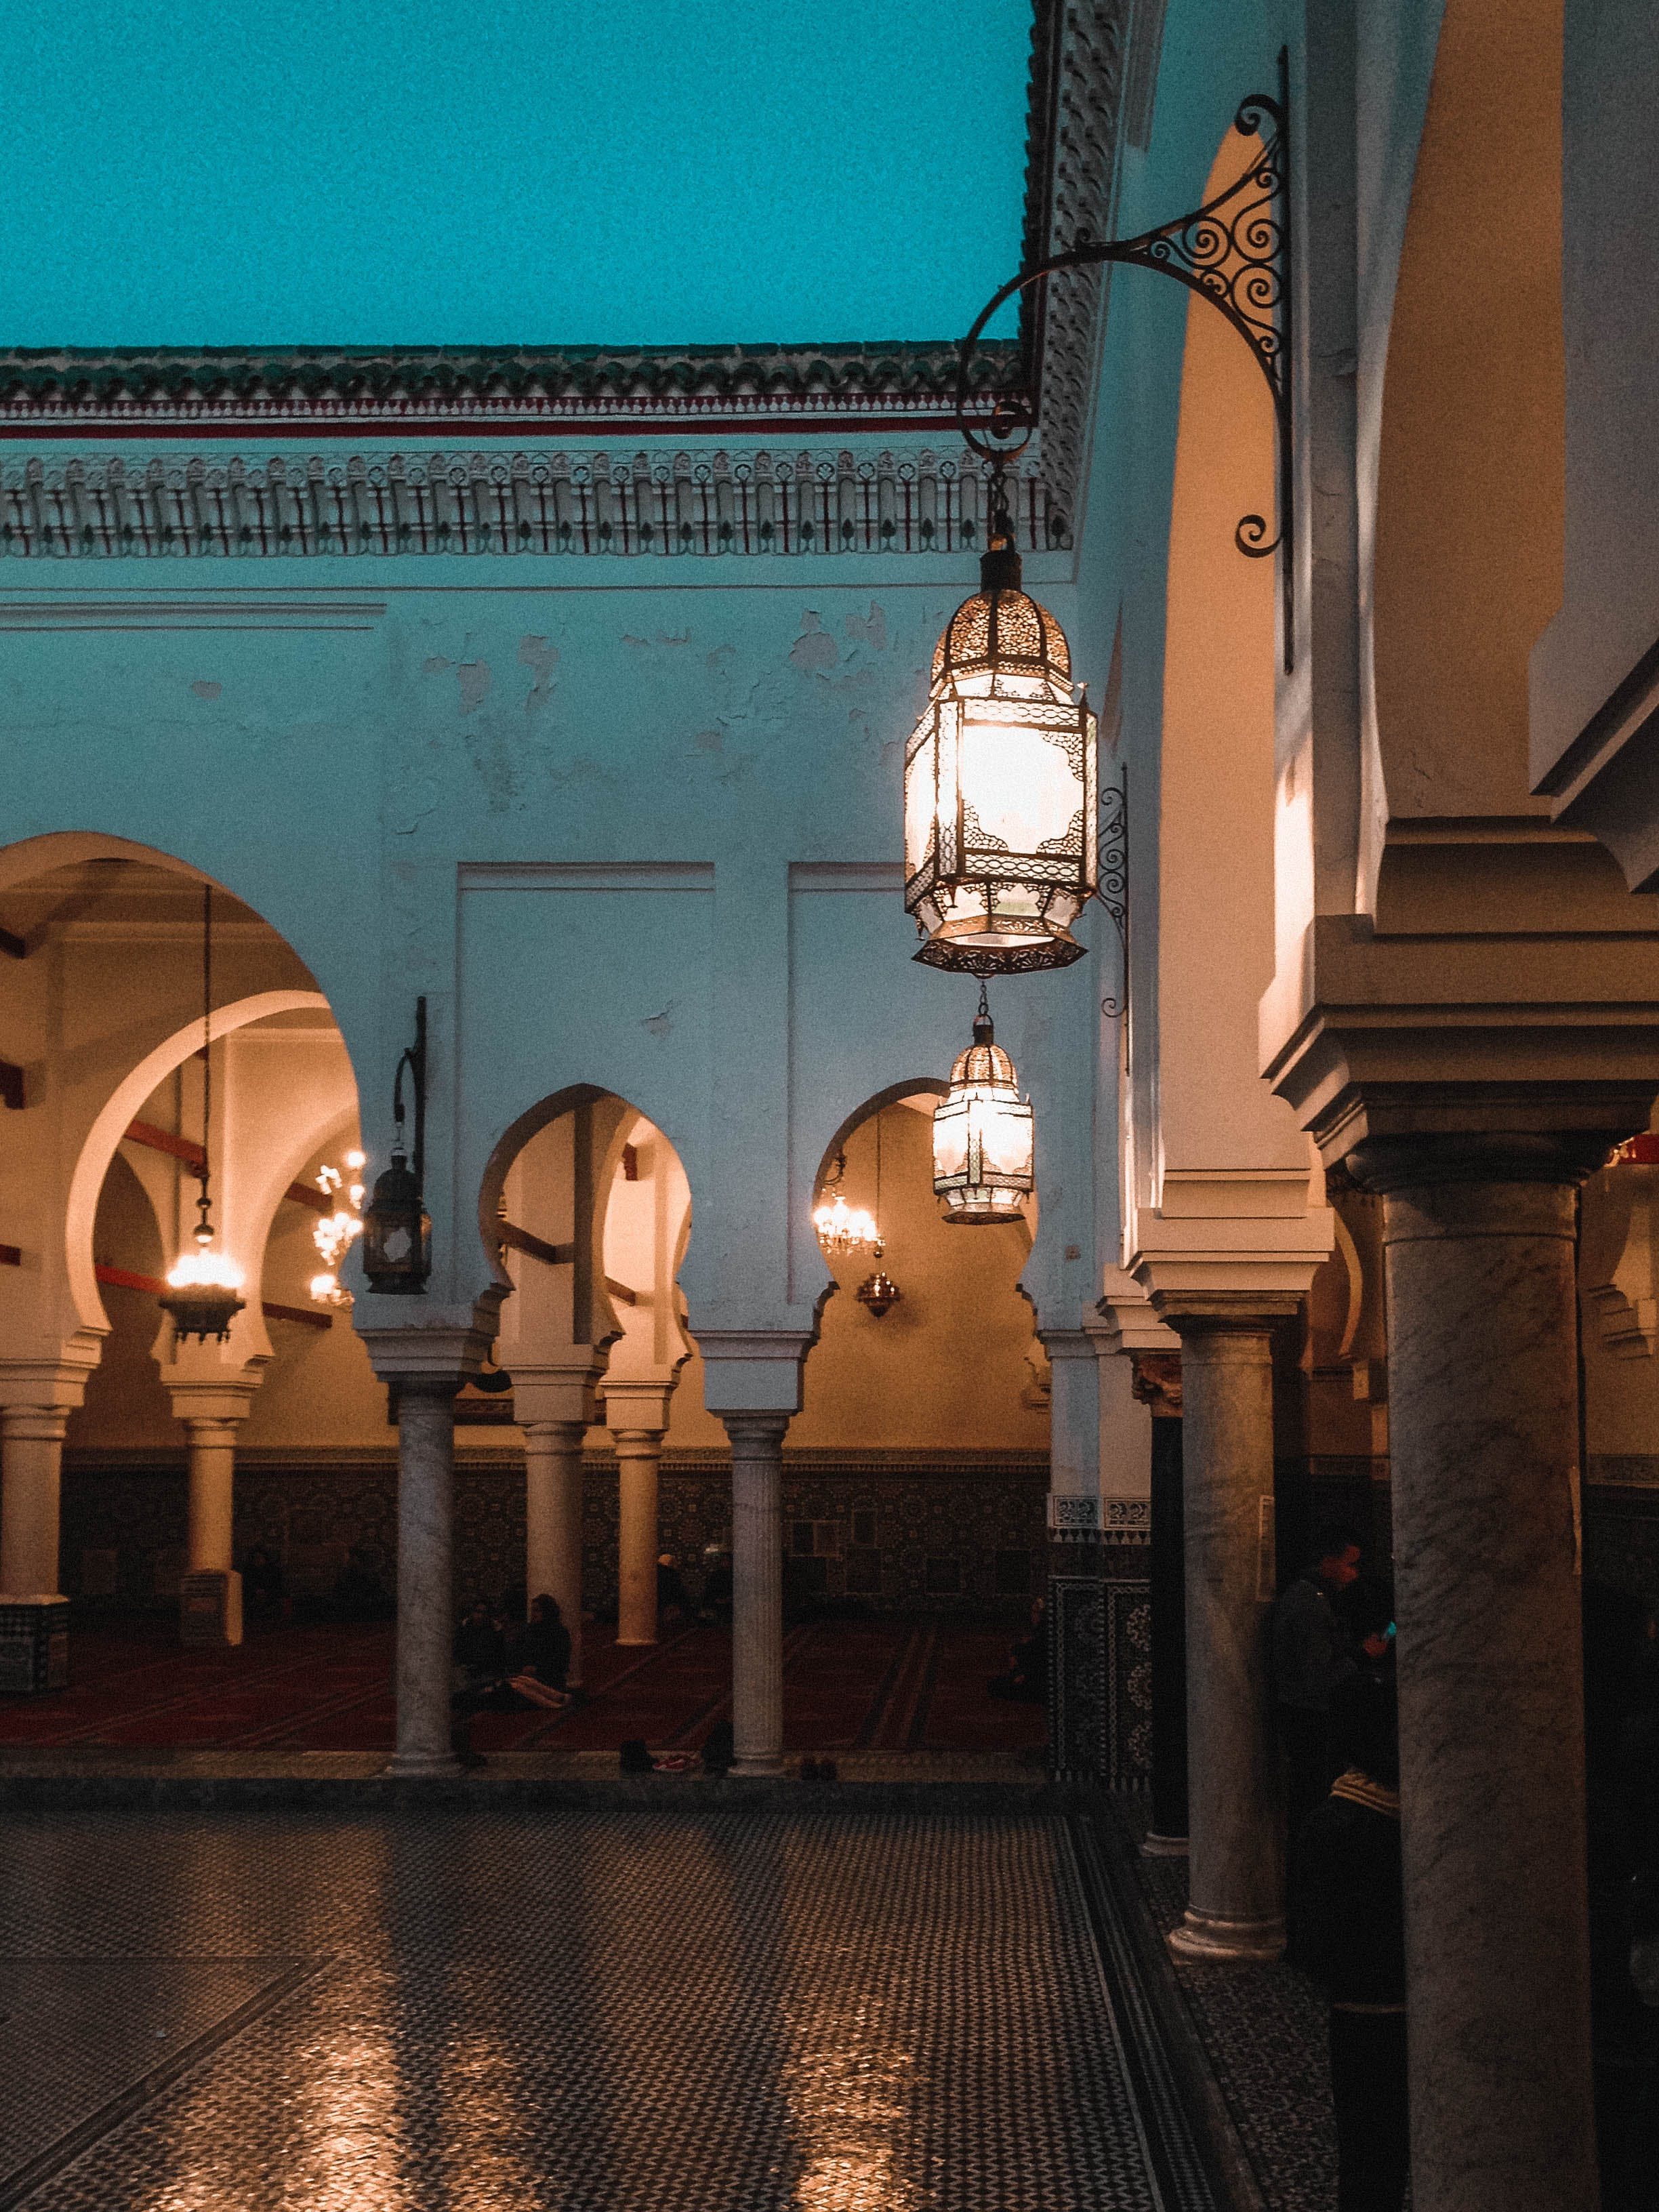 Free stock photo of lights, building, architecture, lamp